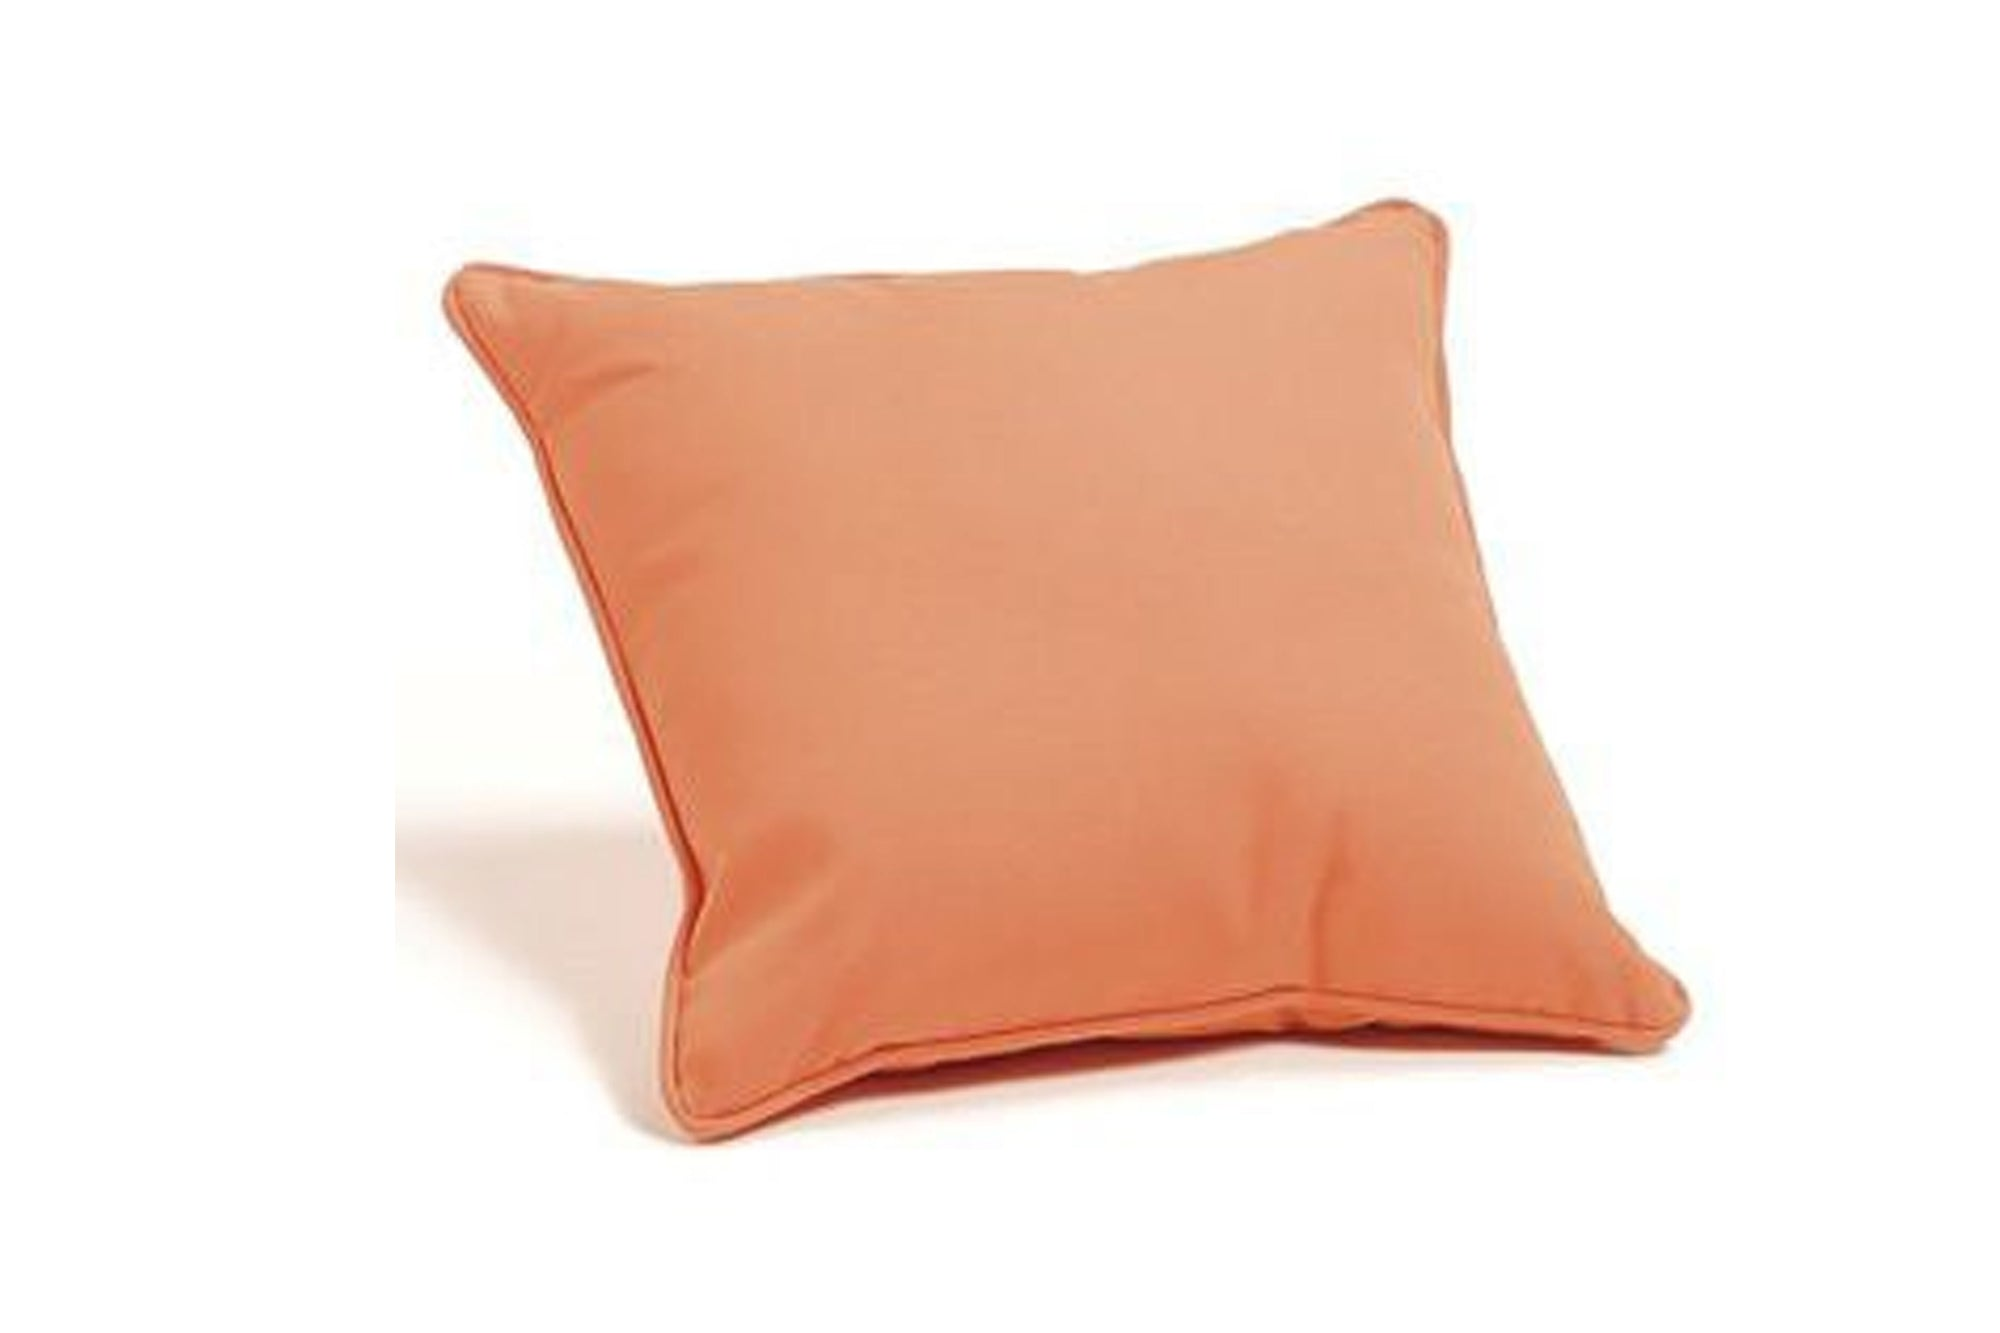 Large Outdoor Fabric Throw Pillow 22 x 22 (Set of 2)